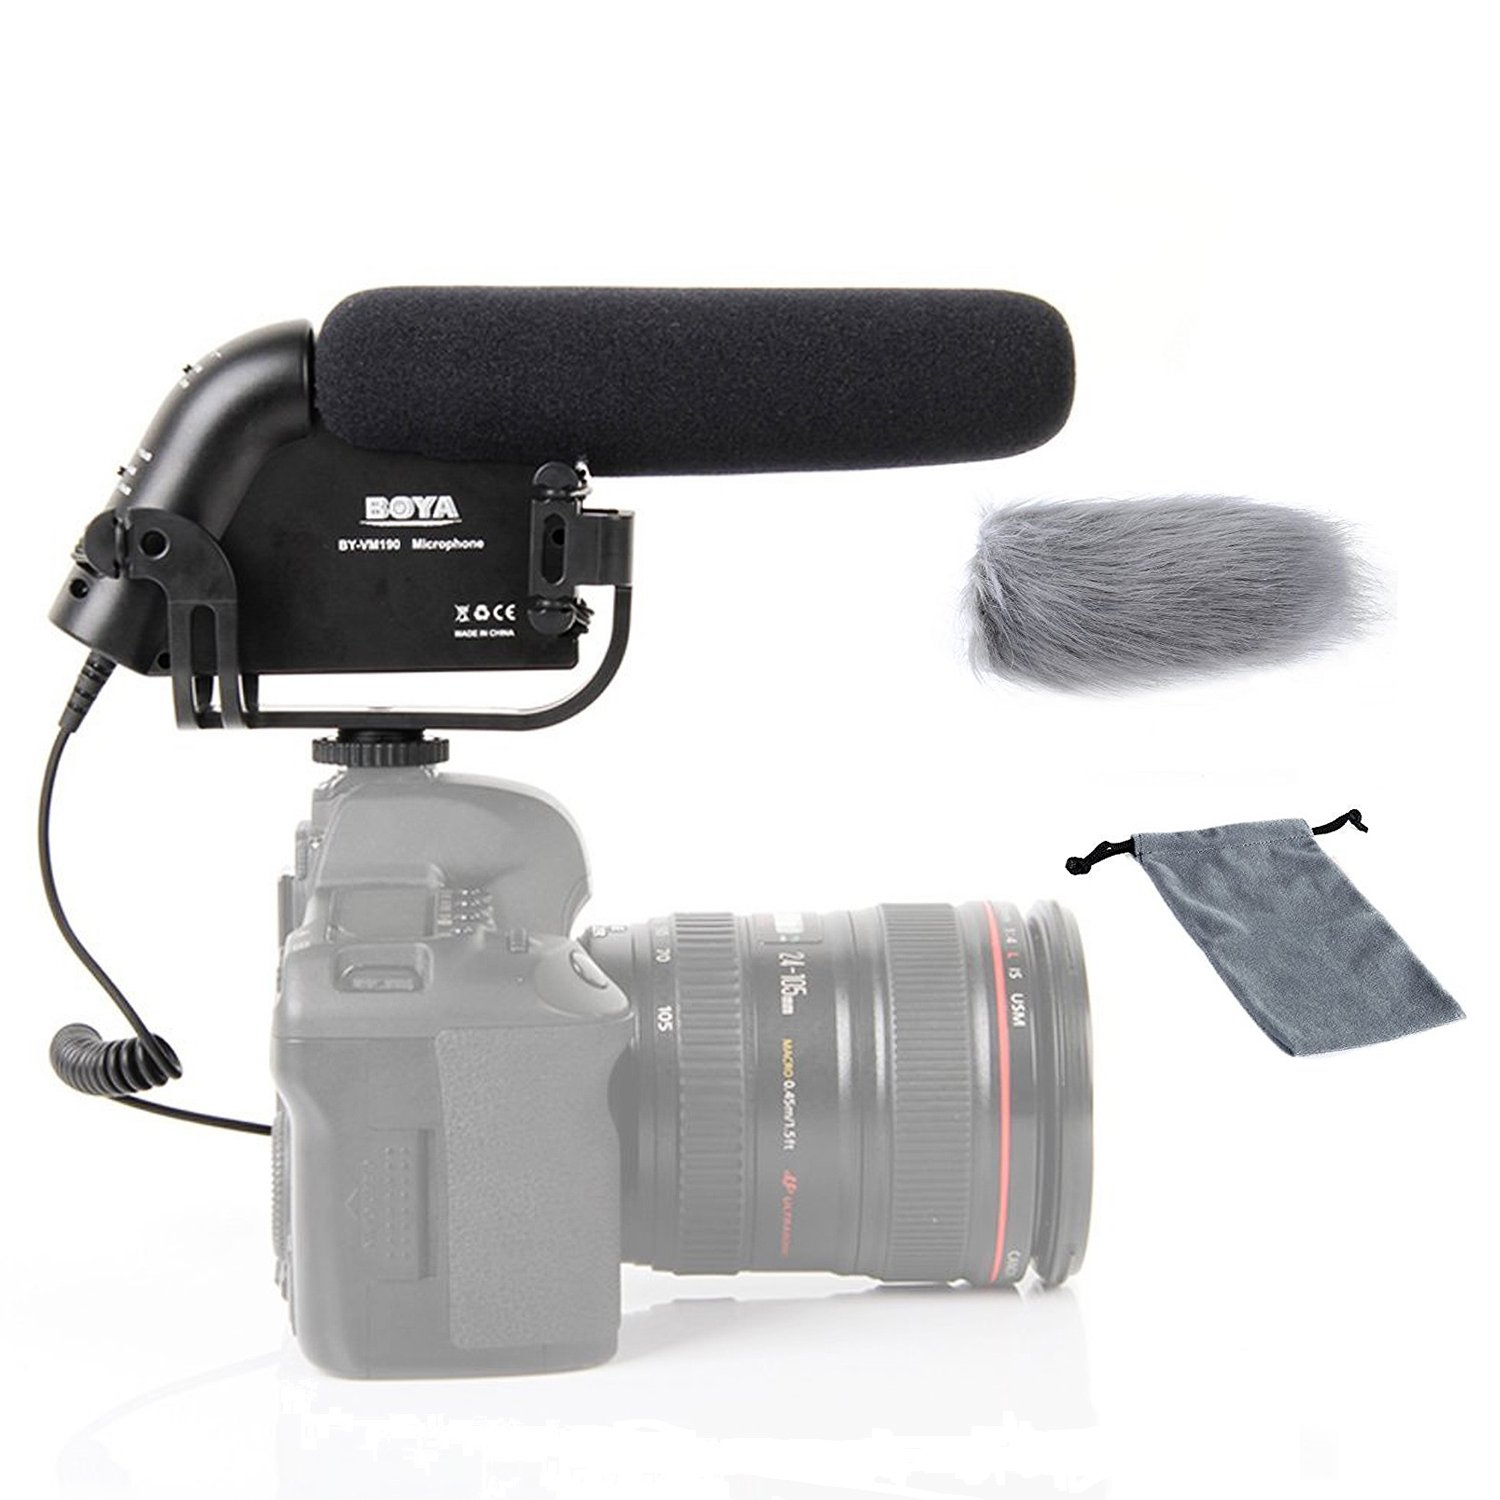 BOYA BY-PVM1000 Pro Broadcast-Quality Interview Shotgun Microphone with Foam Windscreen /& Shock Mount 3 Pin XLR Output for Canon 6D Nikon D800 Sony Panasonic Camcorders